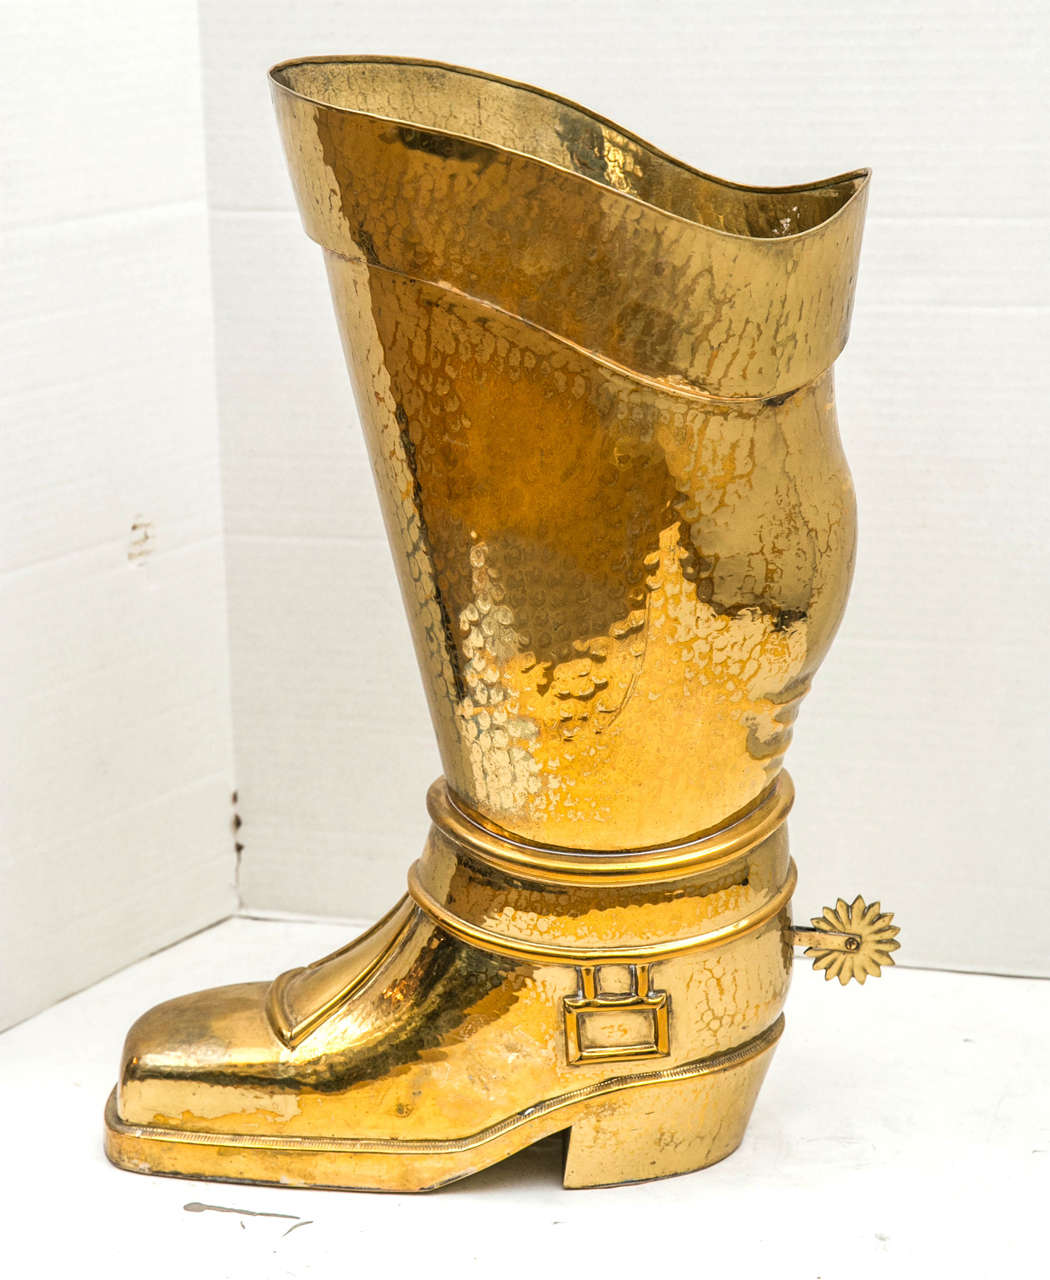 Hammered Brass Riding Boot Umbrella Stand In Excellent Condition For Sale In Mt Kisco, NY